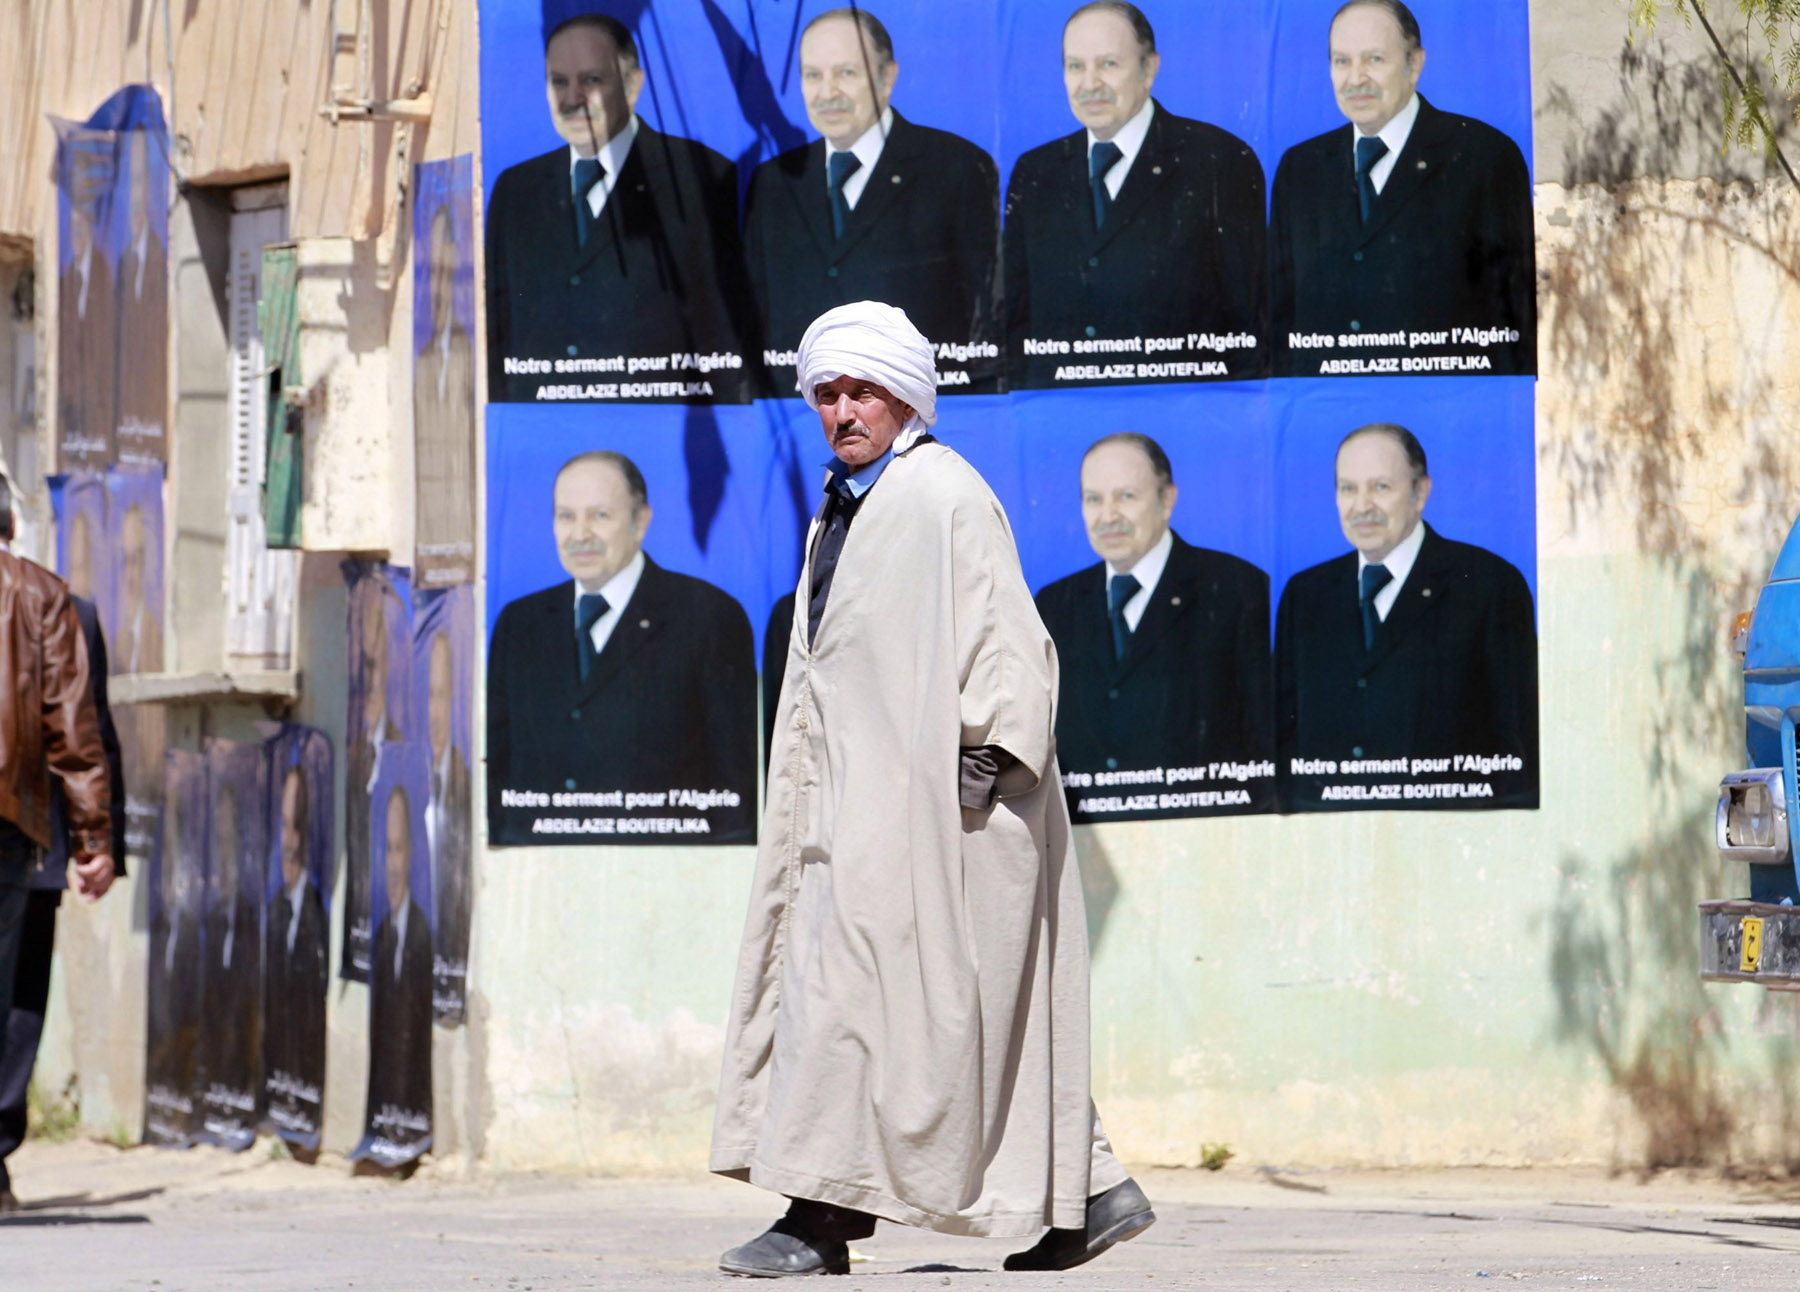 At crossroads. A man walks past posters of Algerian President Abdelaziz Bouteflika in Ain Ouassara, south-west of Algiers. (Reuters)